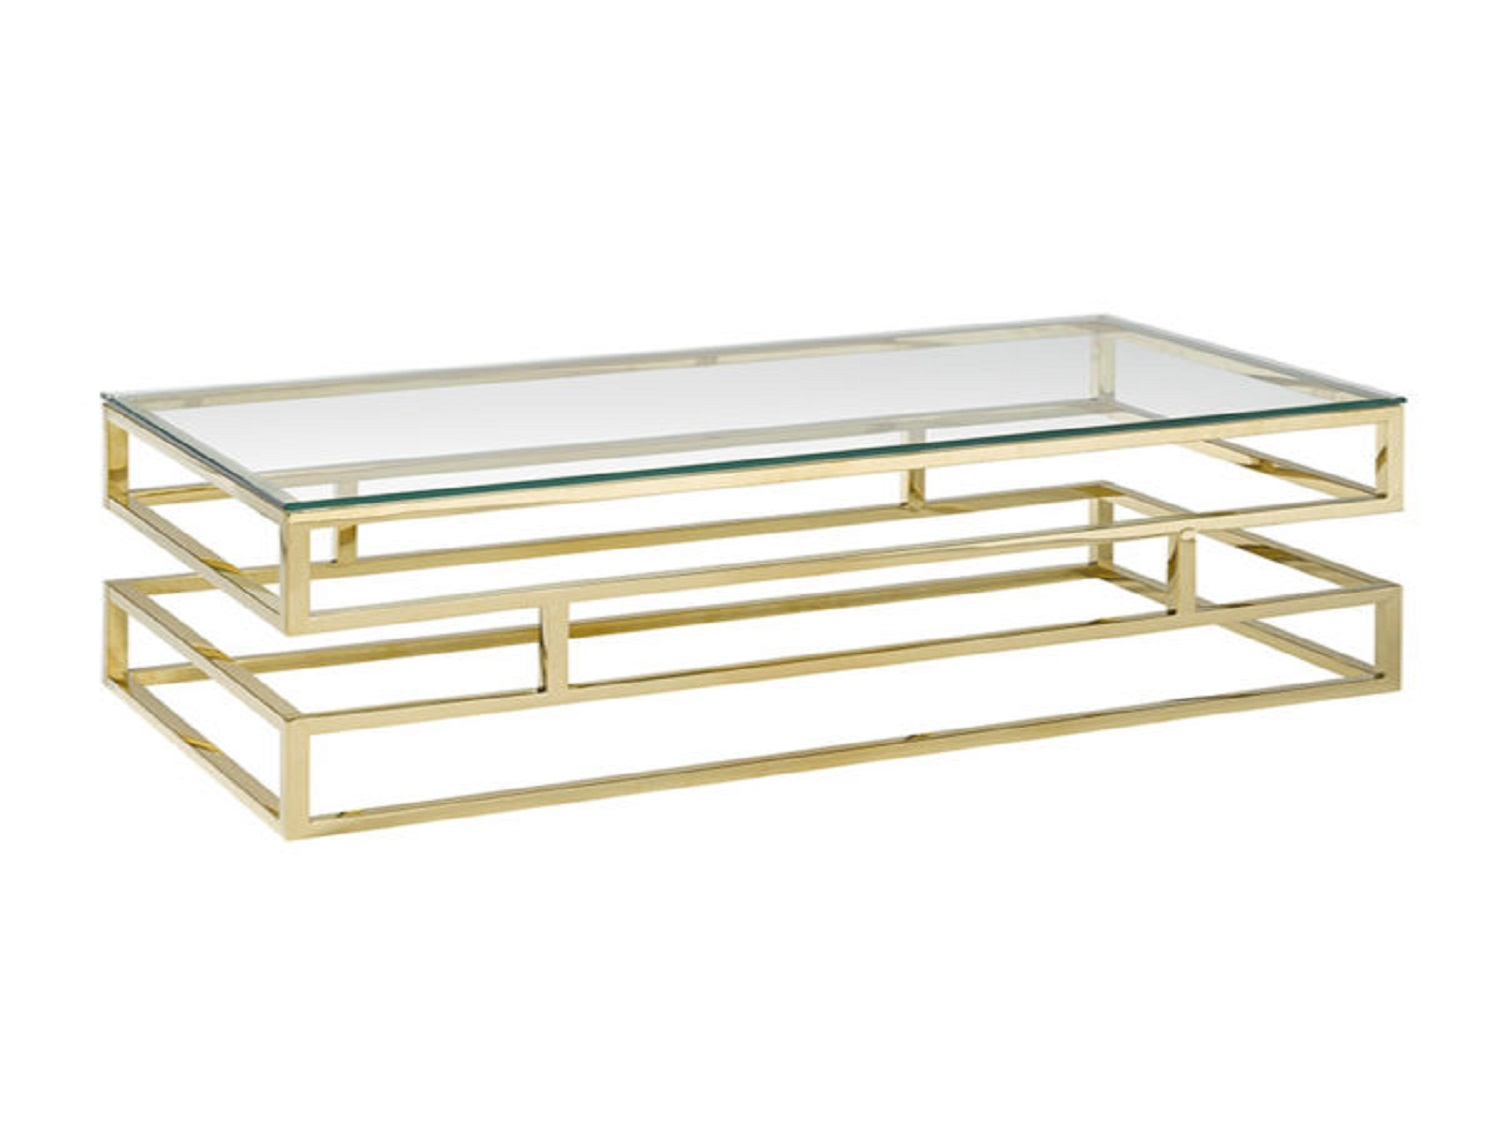 Keaten Glass Top Gold Coffee Table, 100060, Coffee Table by Midha Furniture to Brampton, Mississauga, Etobicoke, Toronto, Scraborough, Caledon, Oakville, Markham, Ajax, Pickering, Oshawa, Richmondhill, Kitchener, Hamilton and GTA area